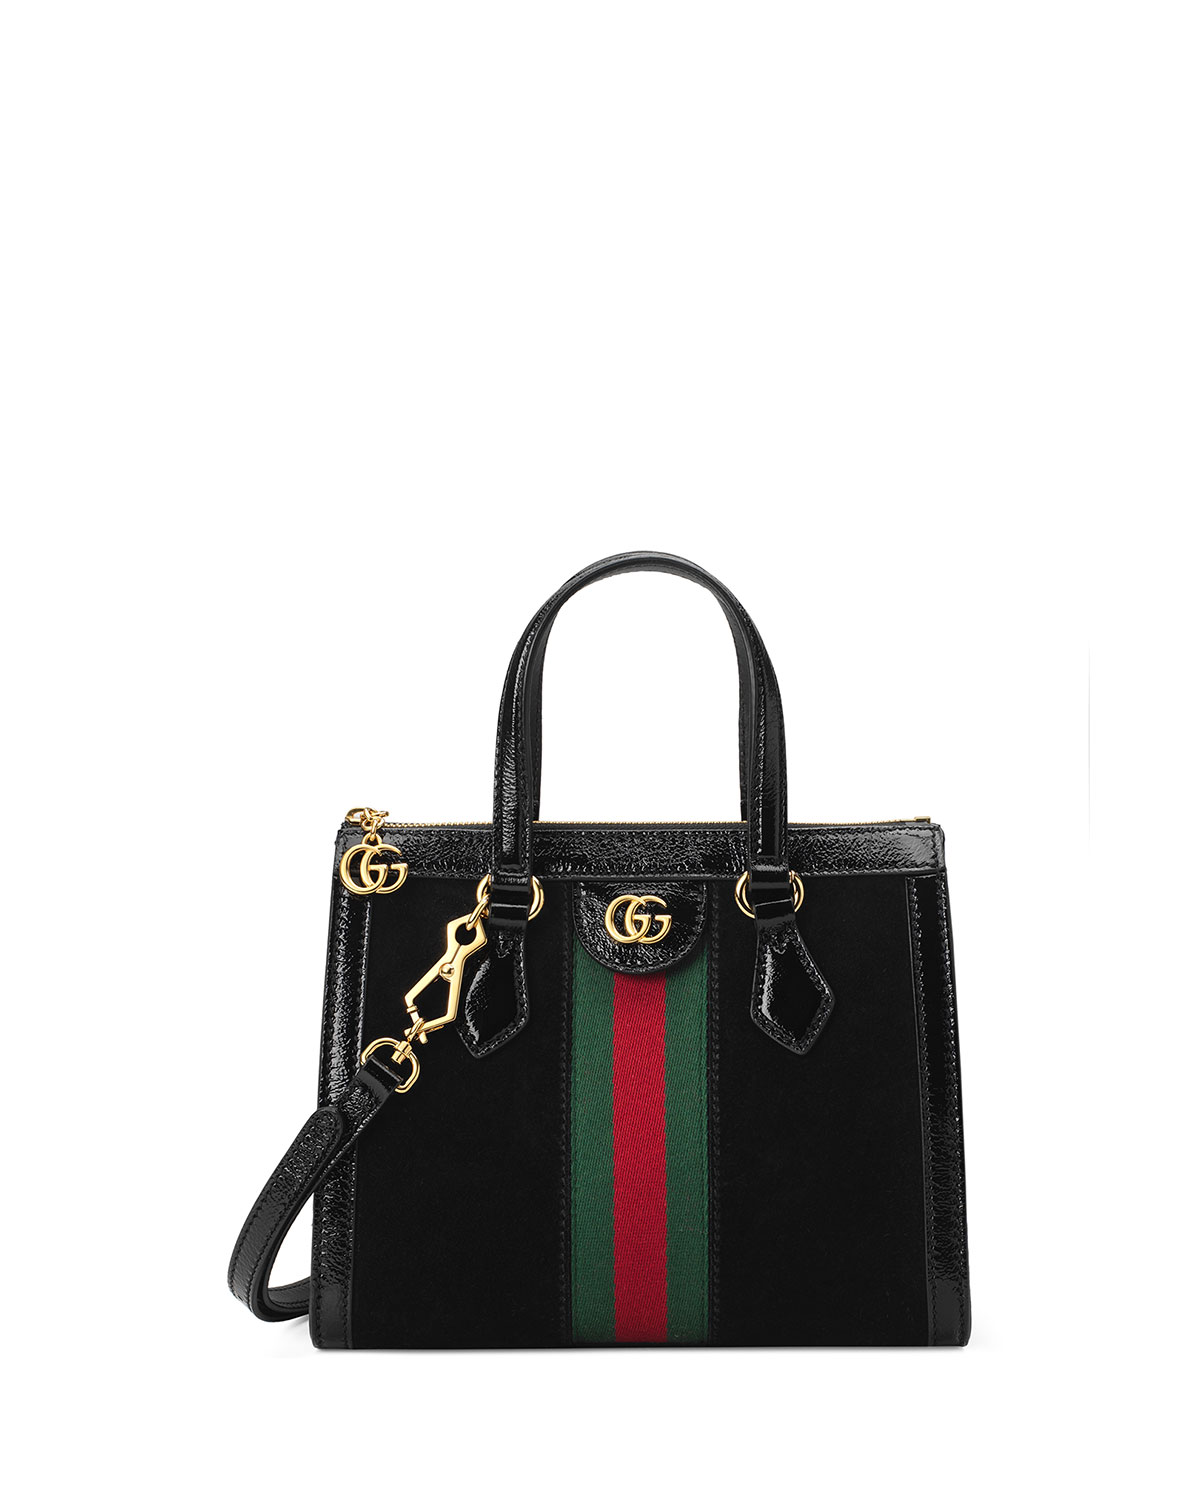 Gucci Ophidia Small Suede Tote Bag   Neiman Marcus e8b6177944